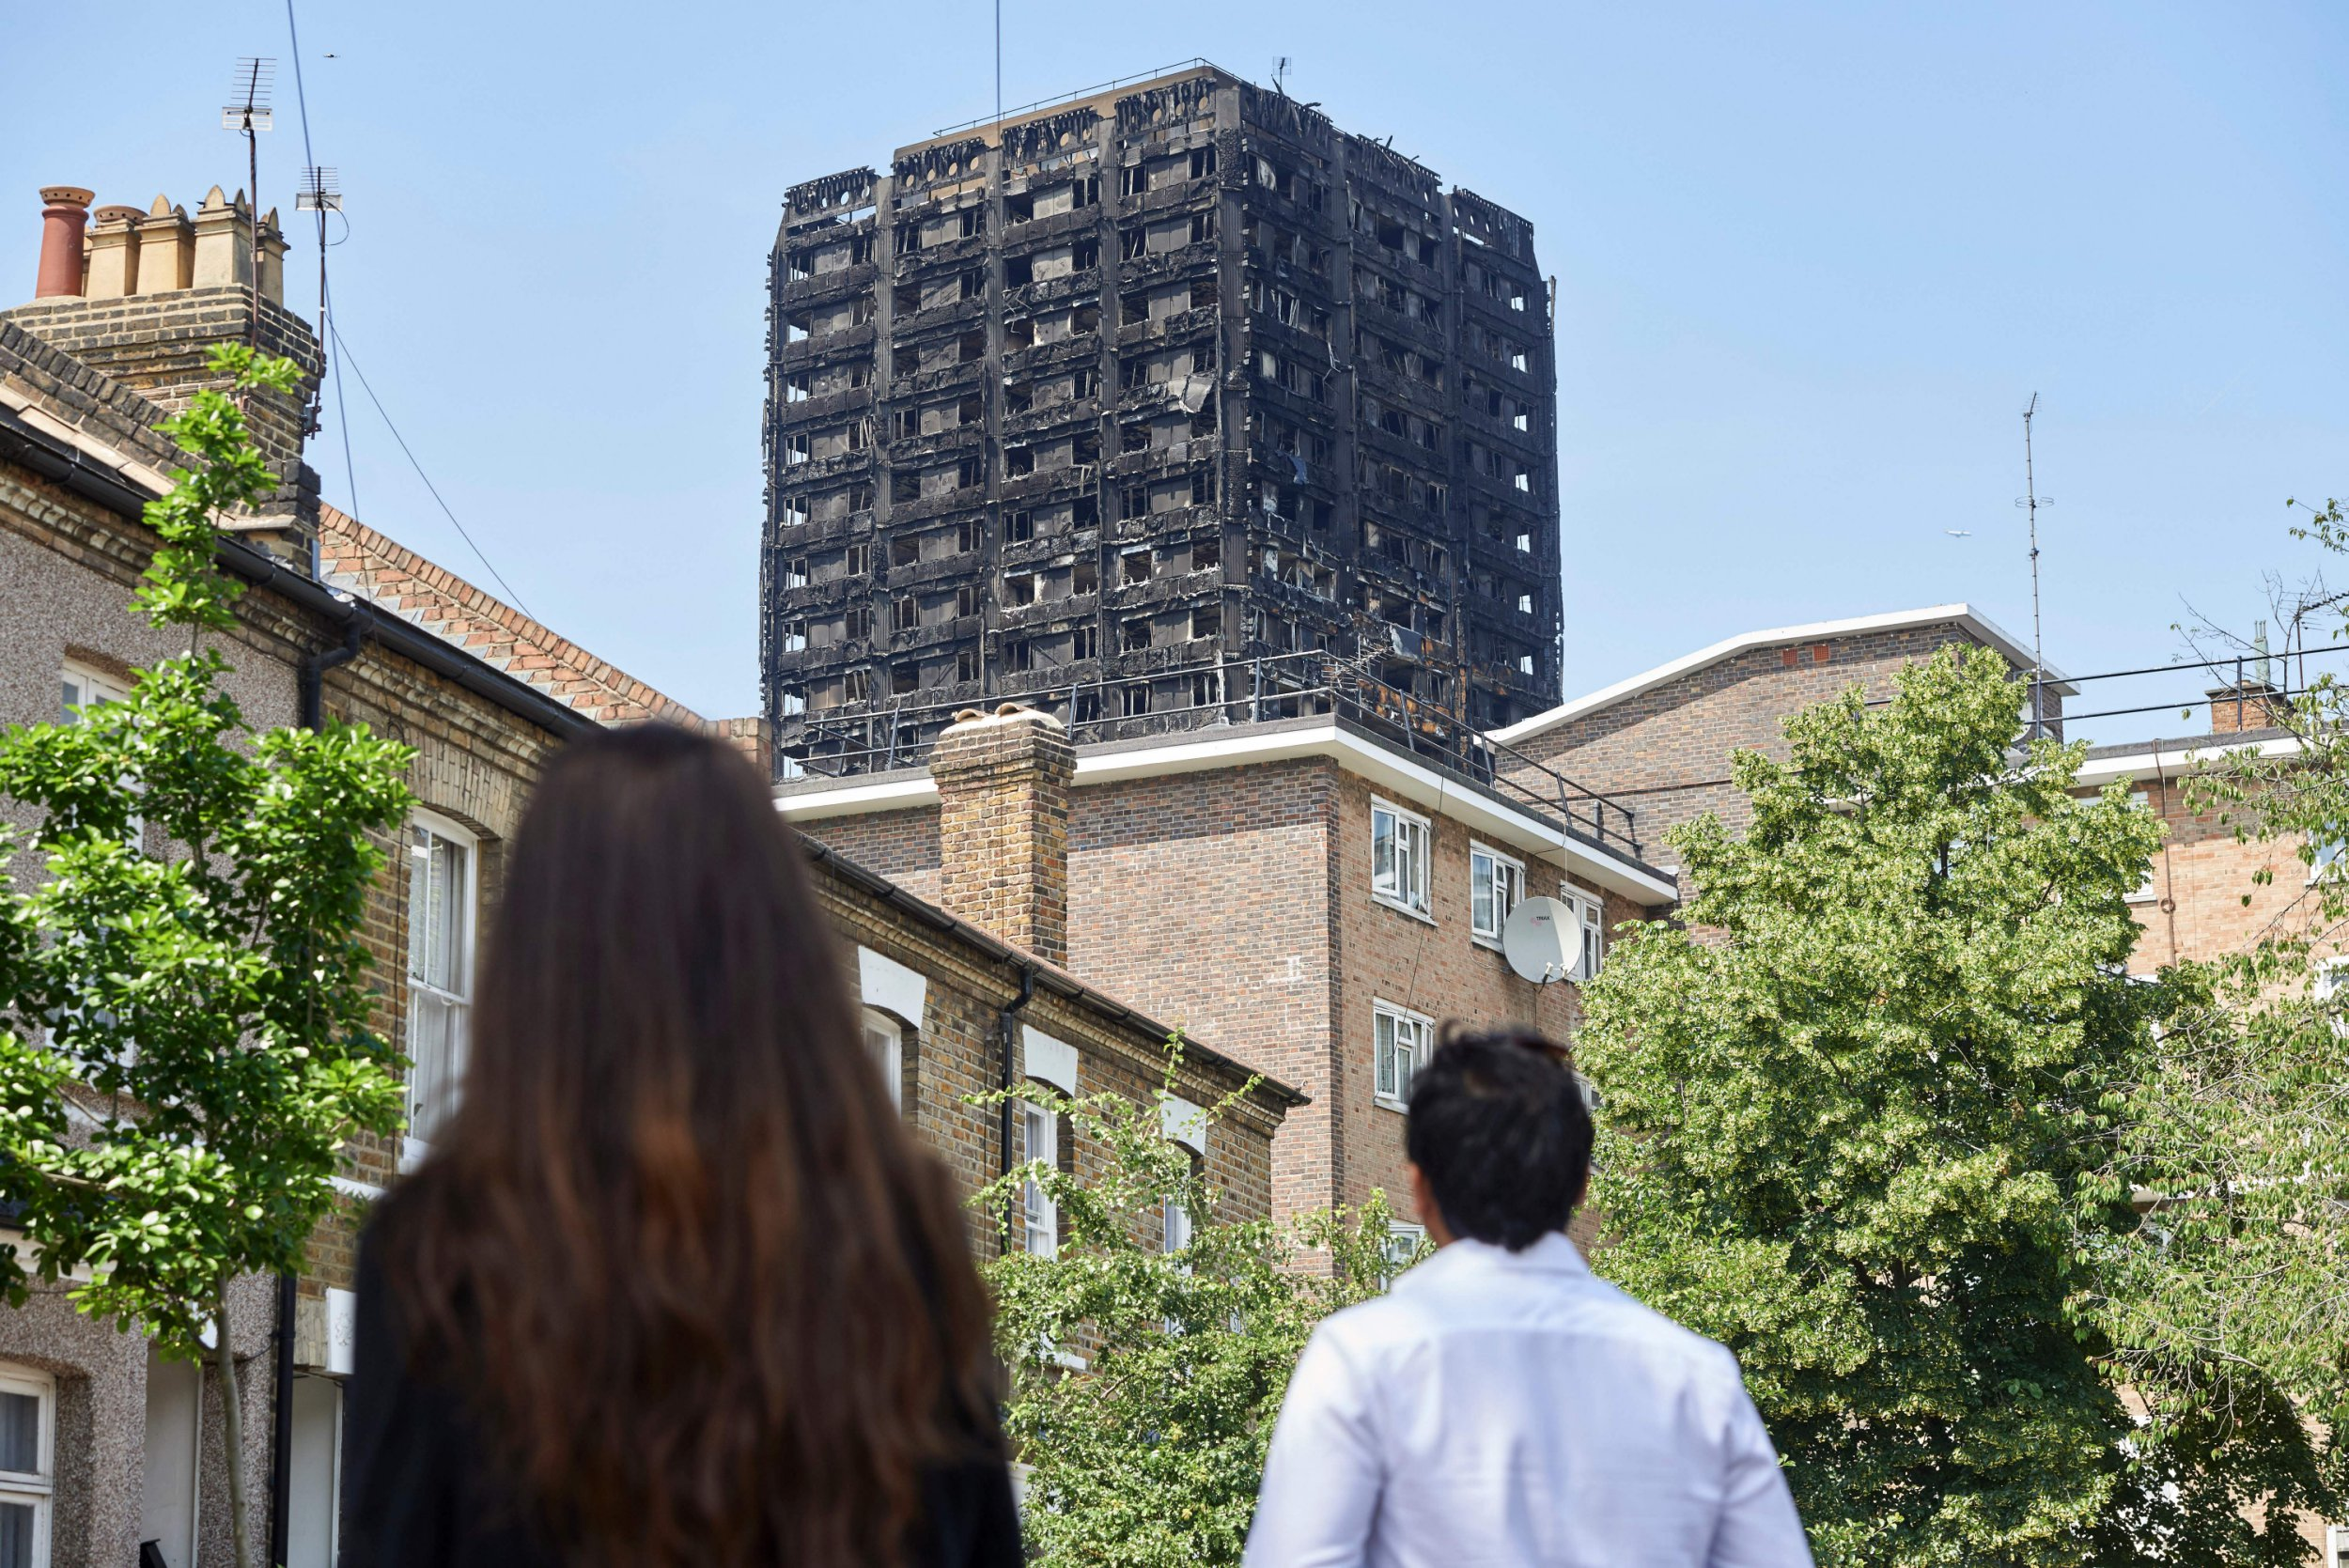 Twenty Grenfell Tower survivors tried to kill themselves in weeks after blaze